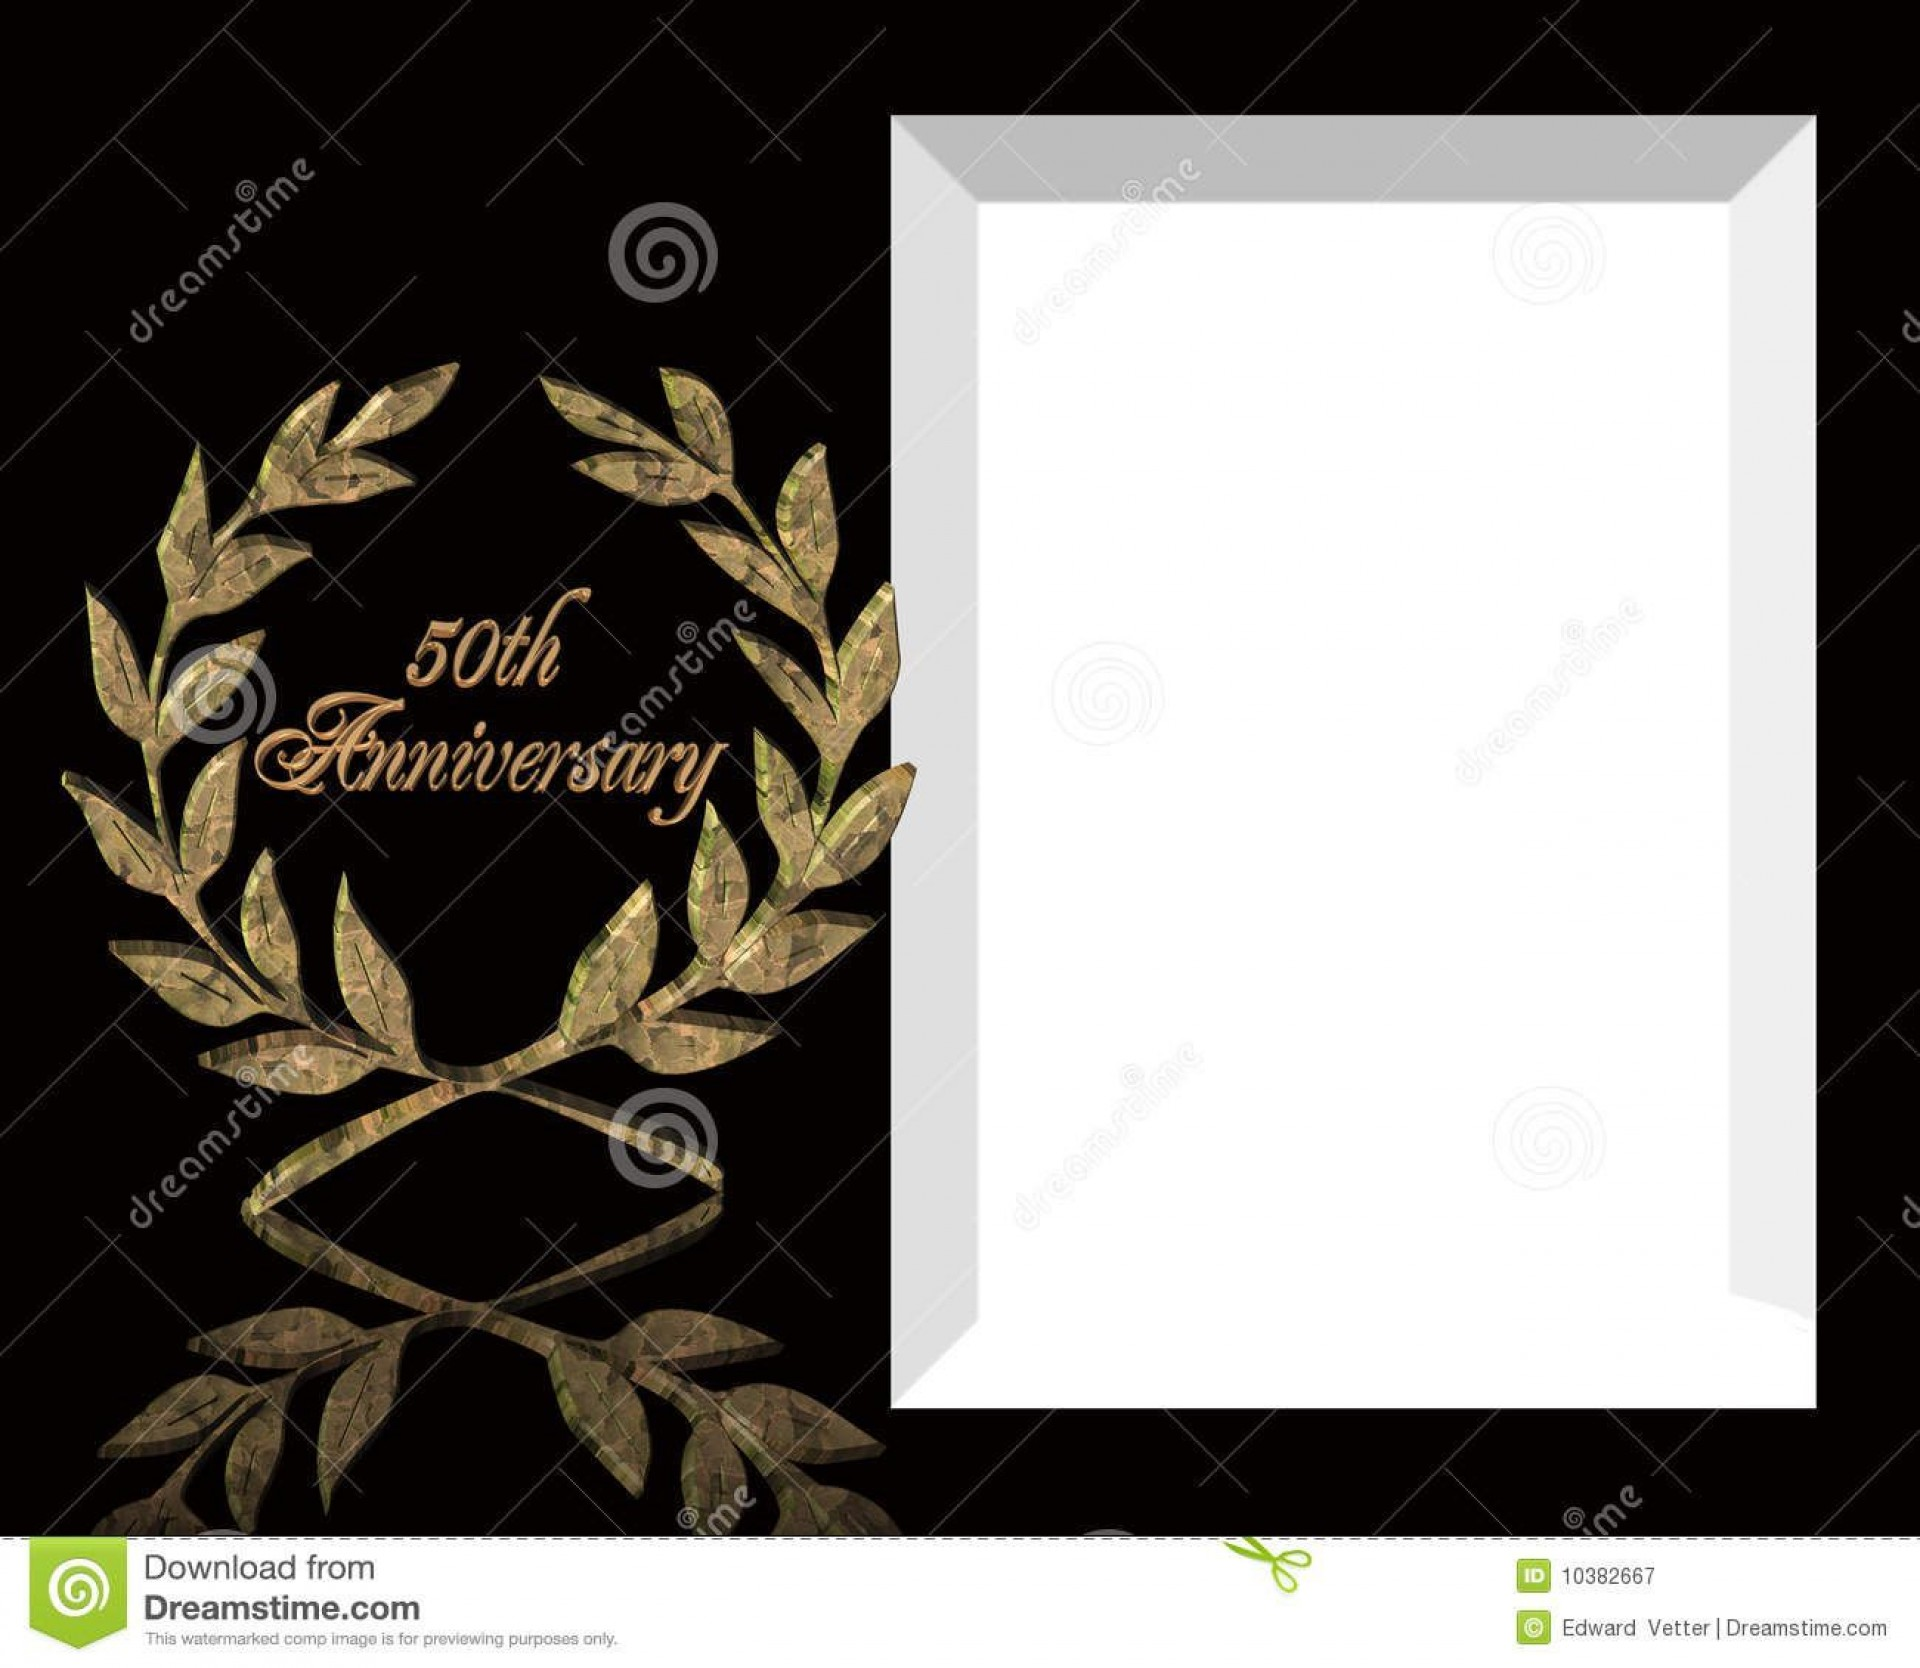 006 Archaicawful 50th Anniversary Invitation Template Free Highest Clarity  Download Golden Wedding1920